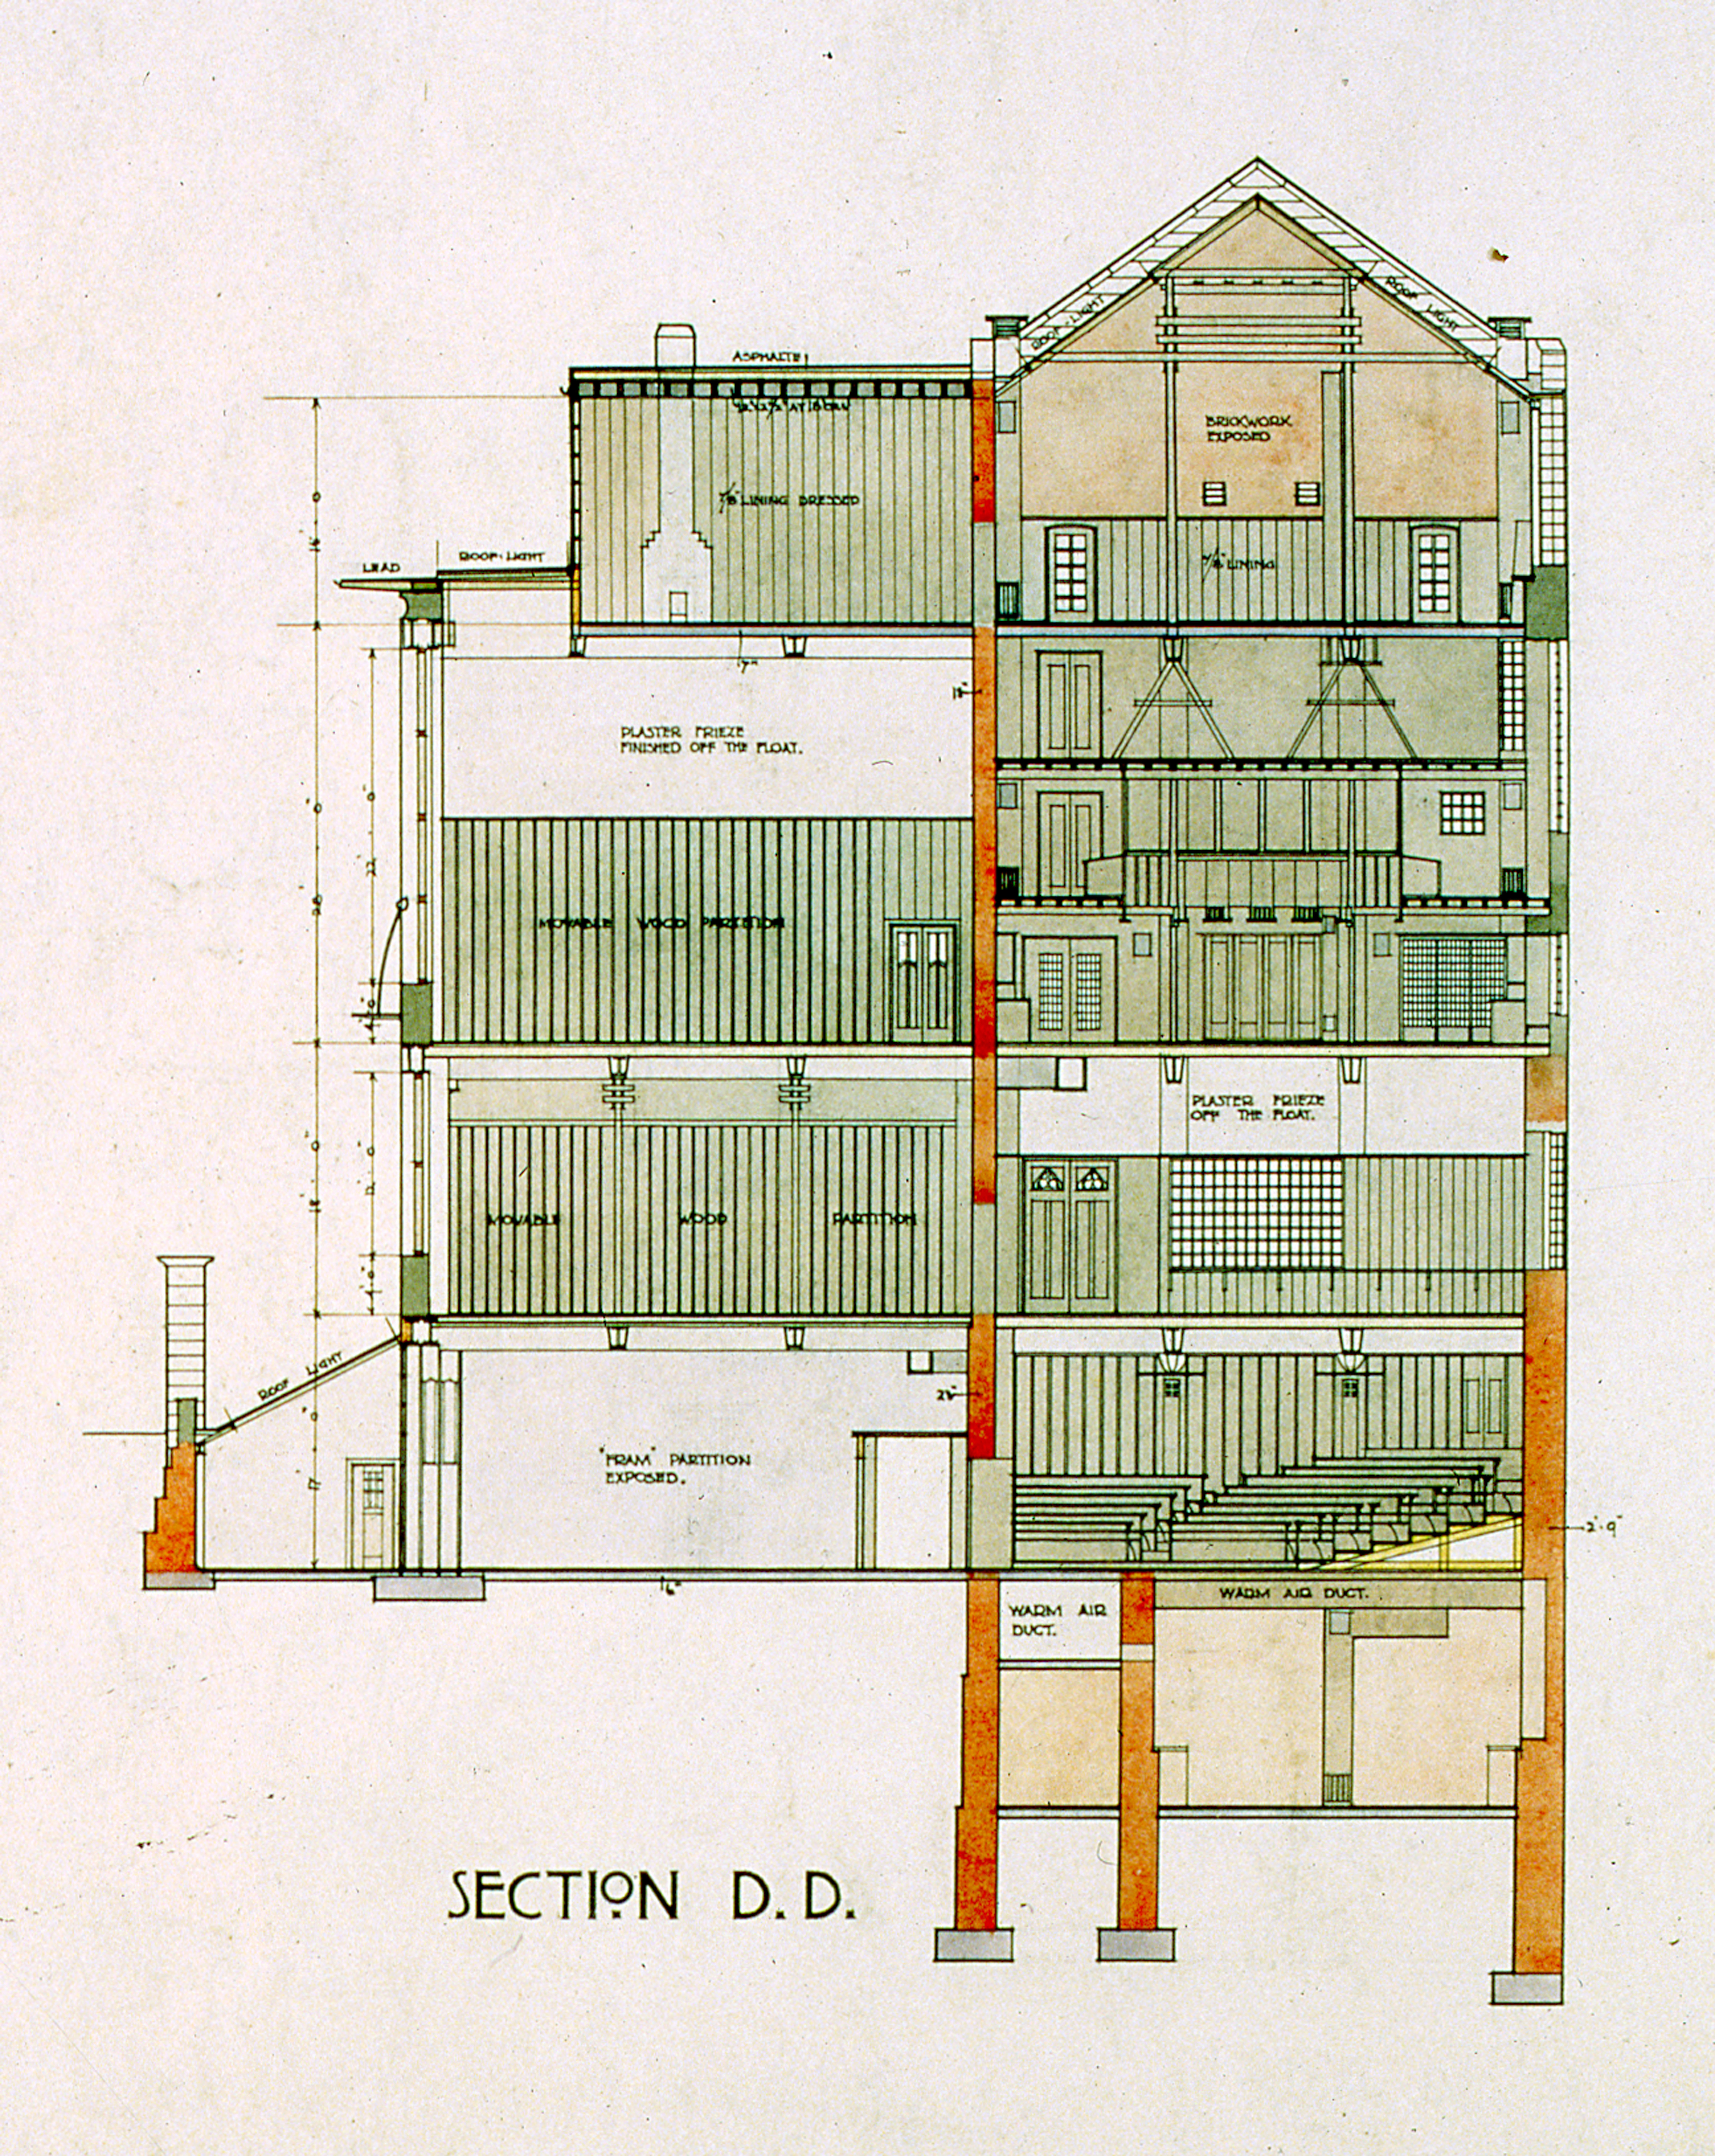 Section of Glasgow School of Art, by Charles Rennie Mackintosh, 1910